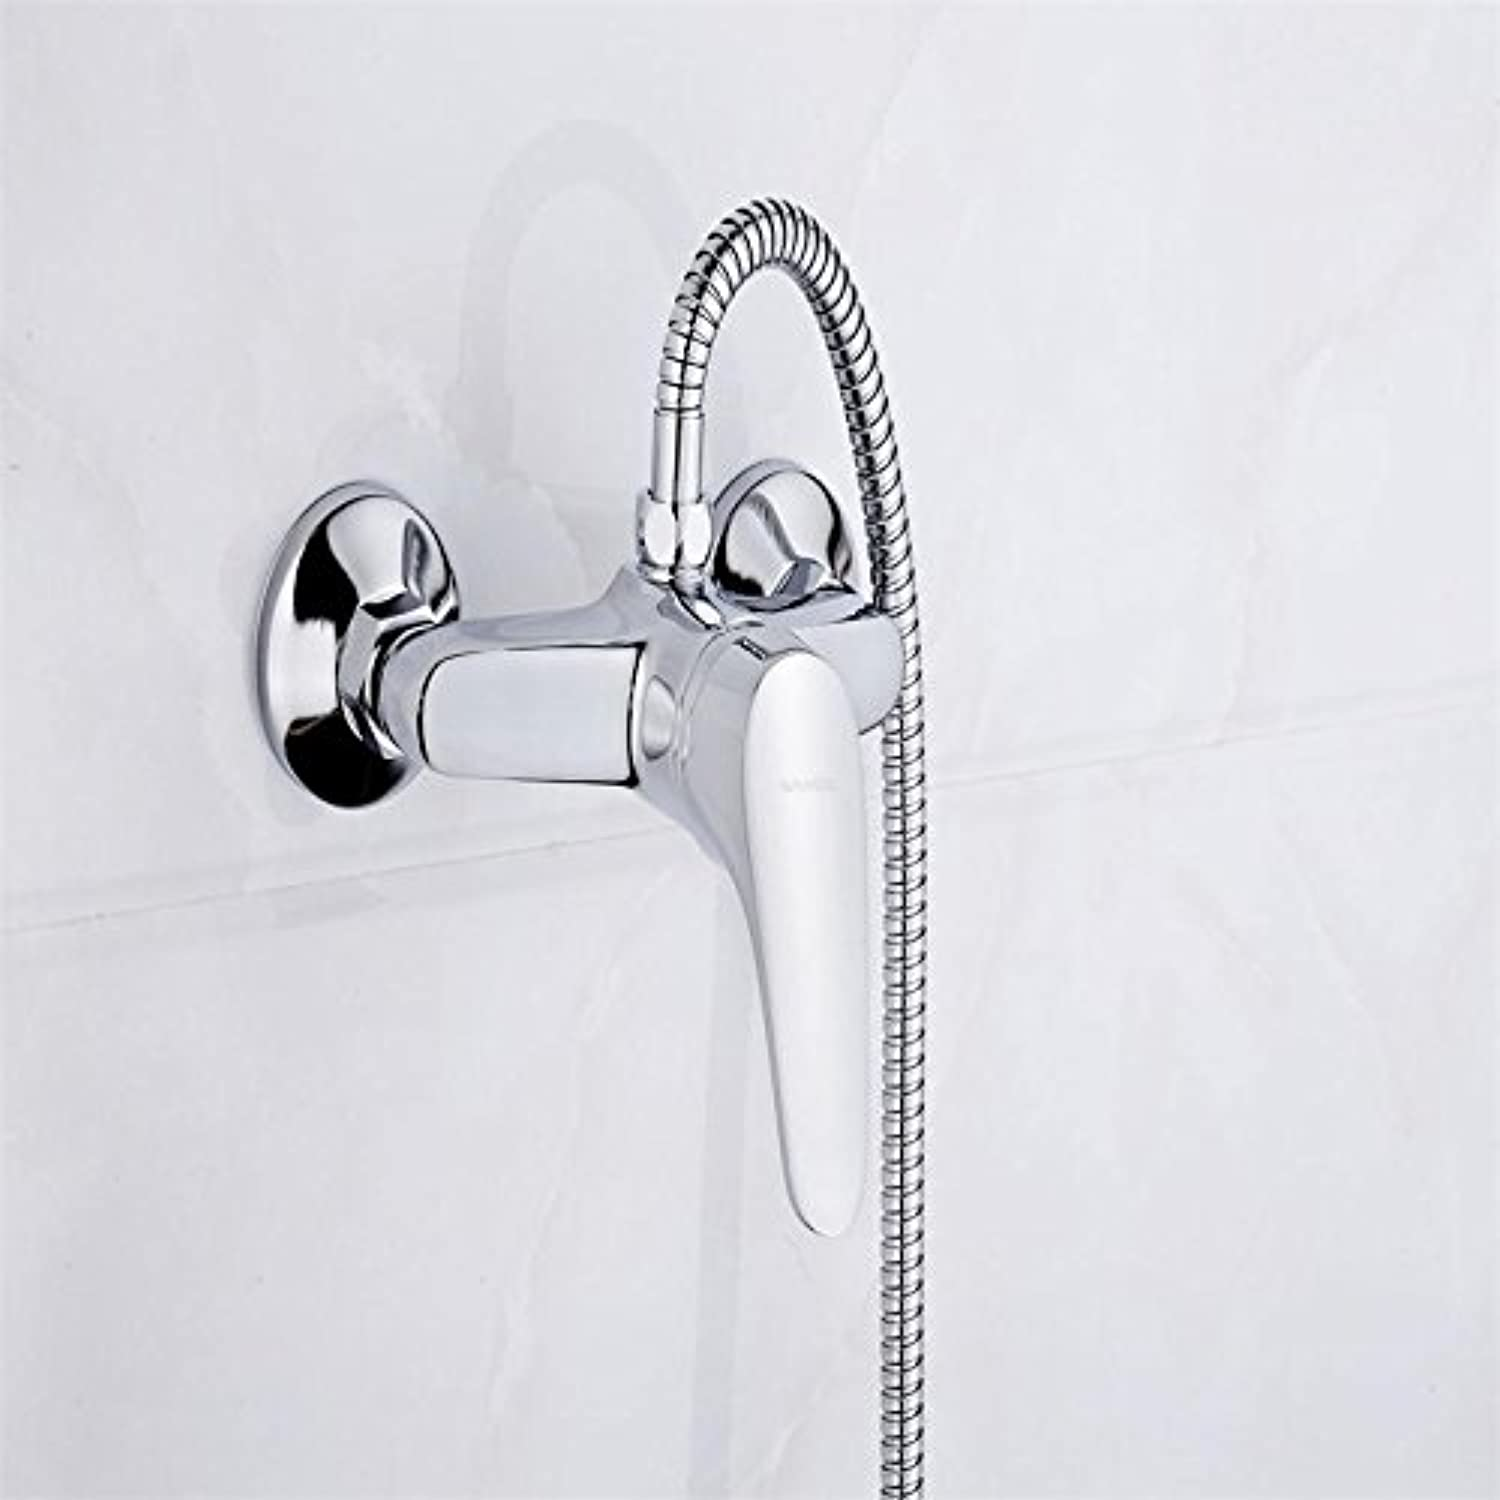 Wangel Set Classic Style Single Handle Solid Brass Bathroom Faucet Shower Tap Cold and Hot Water Mixer 5948,59484B UP